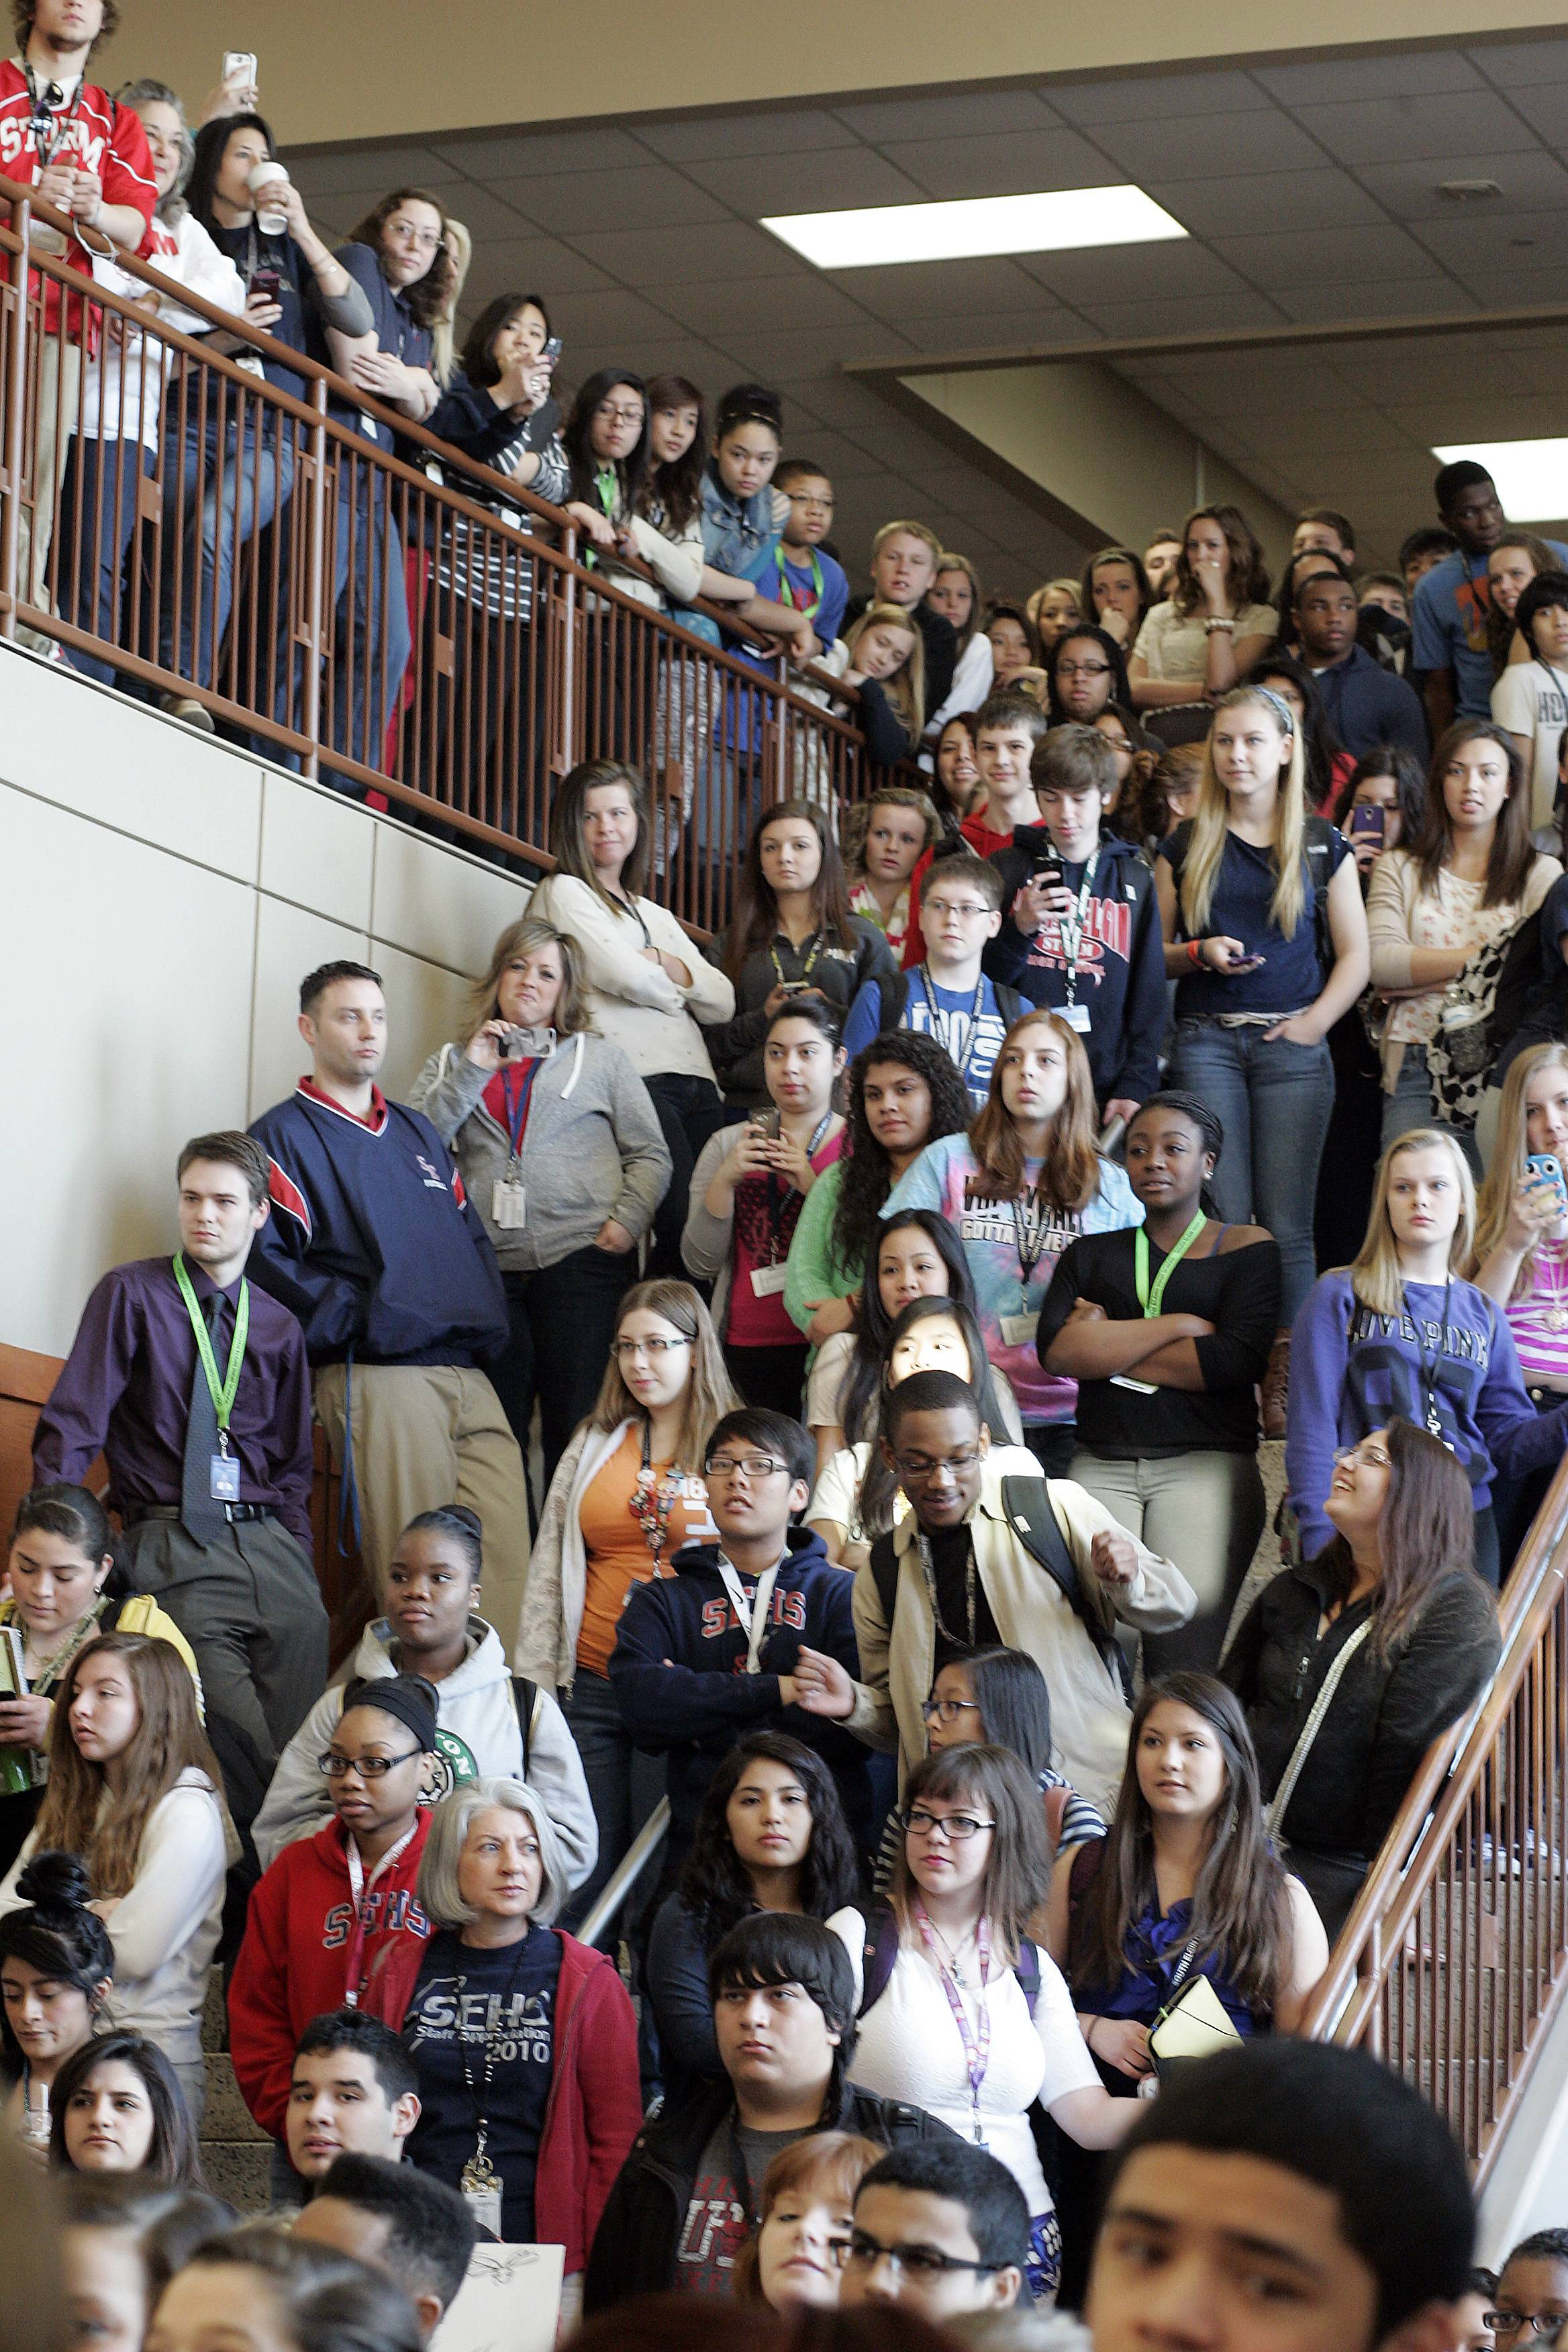 Thousands of texting students line the halls of South Elgin High School to watch as the village is awarded the 101.9 FM, The Mix trophy after they won Eric and Kathy's Suburban Madness Battle of the Burbs Contest.